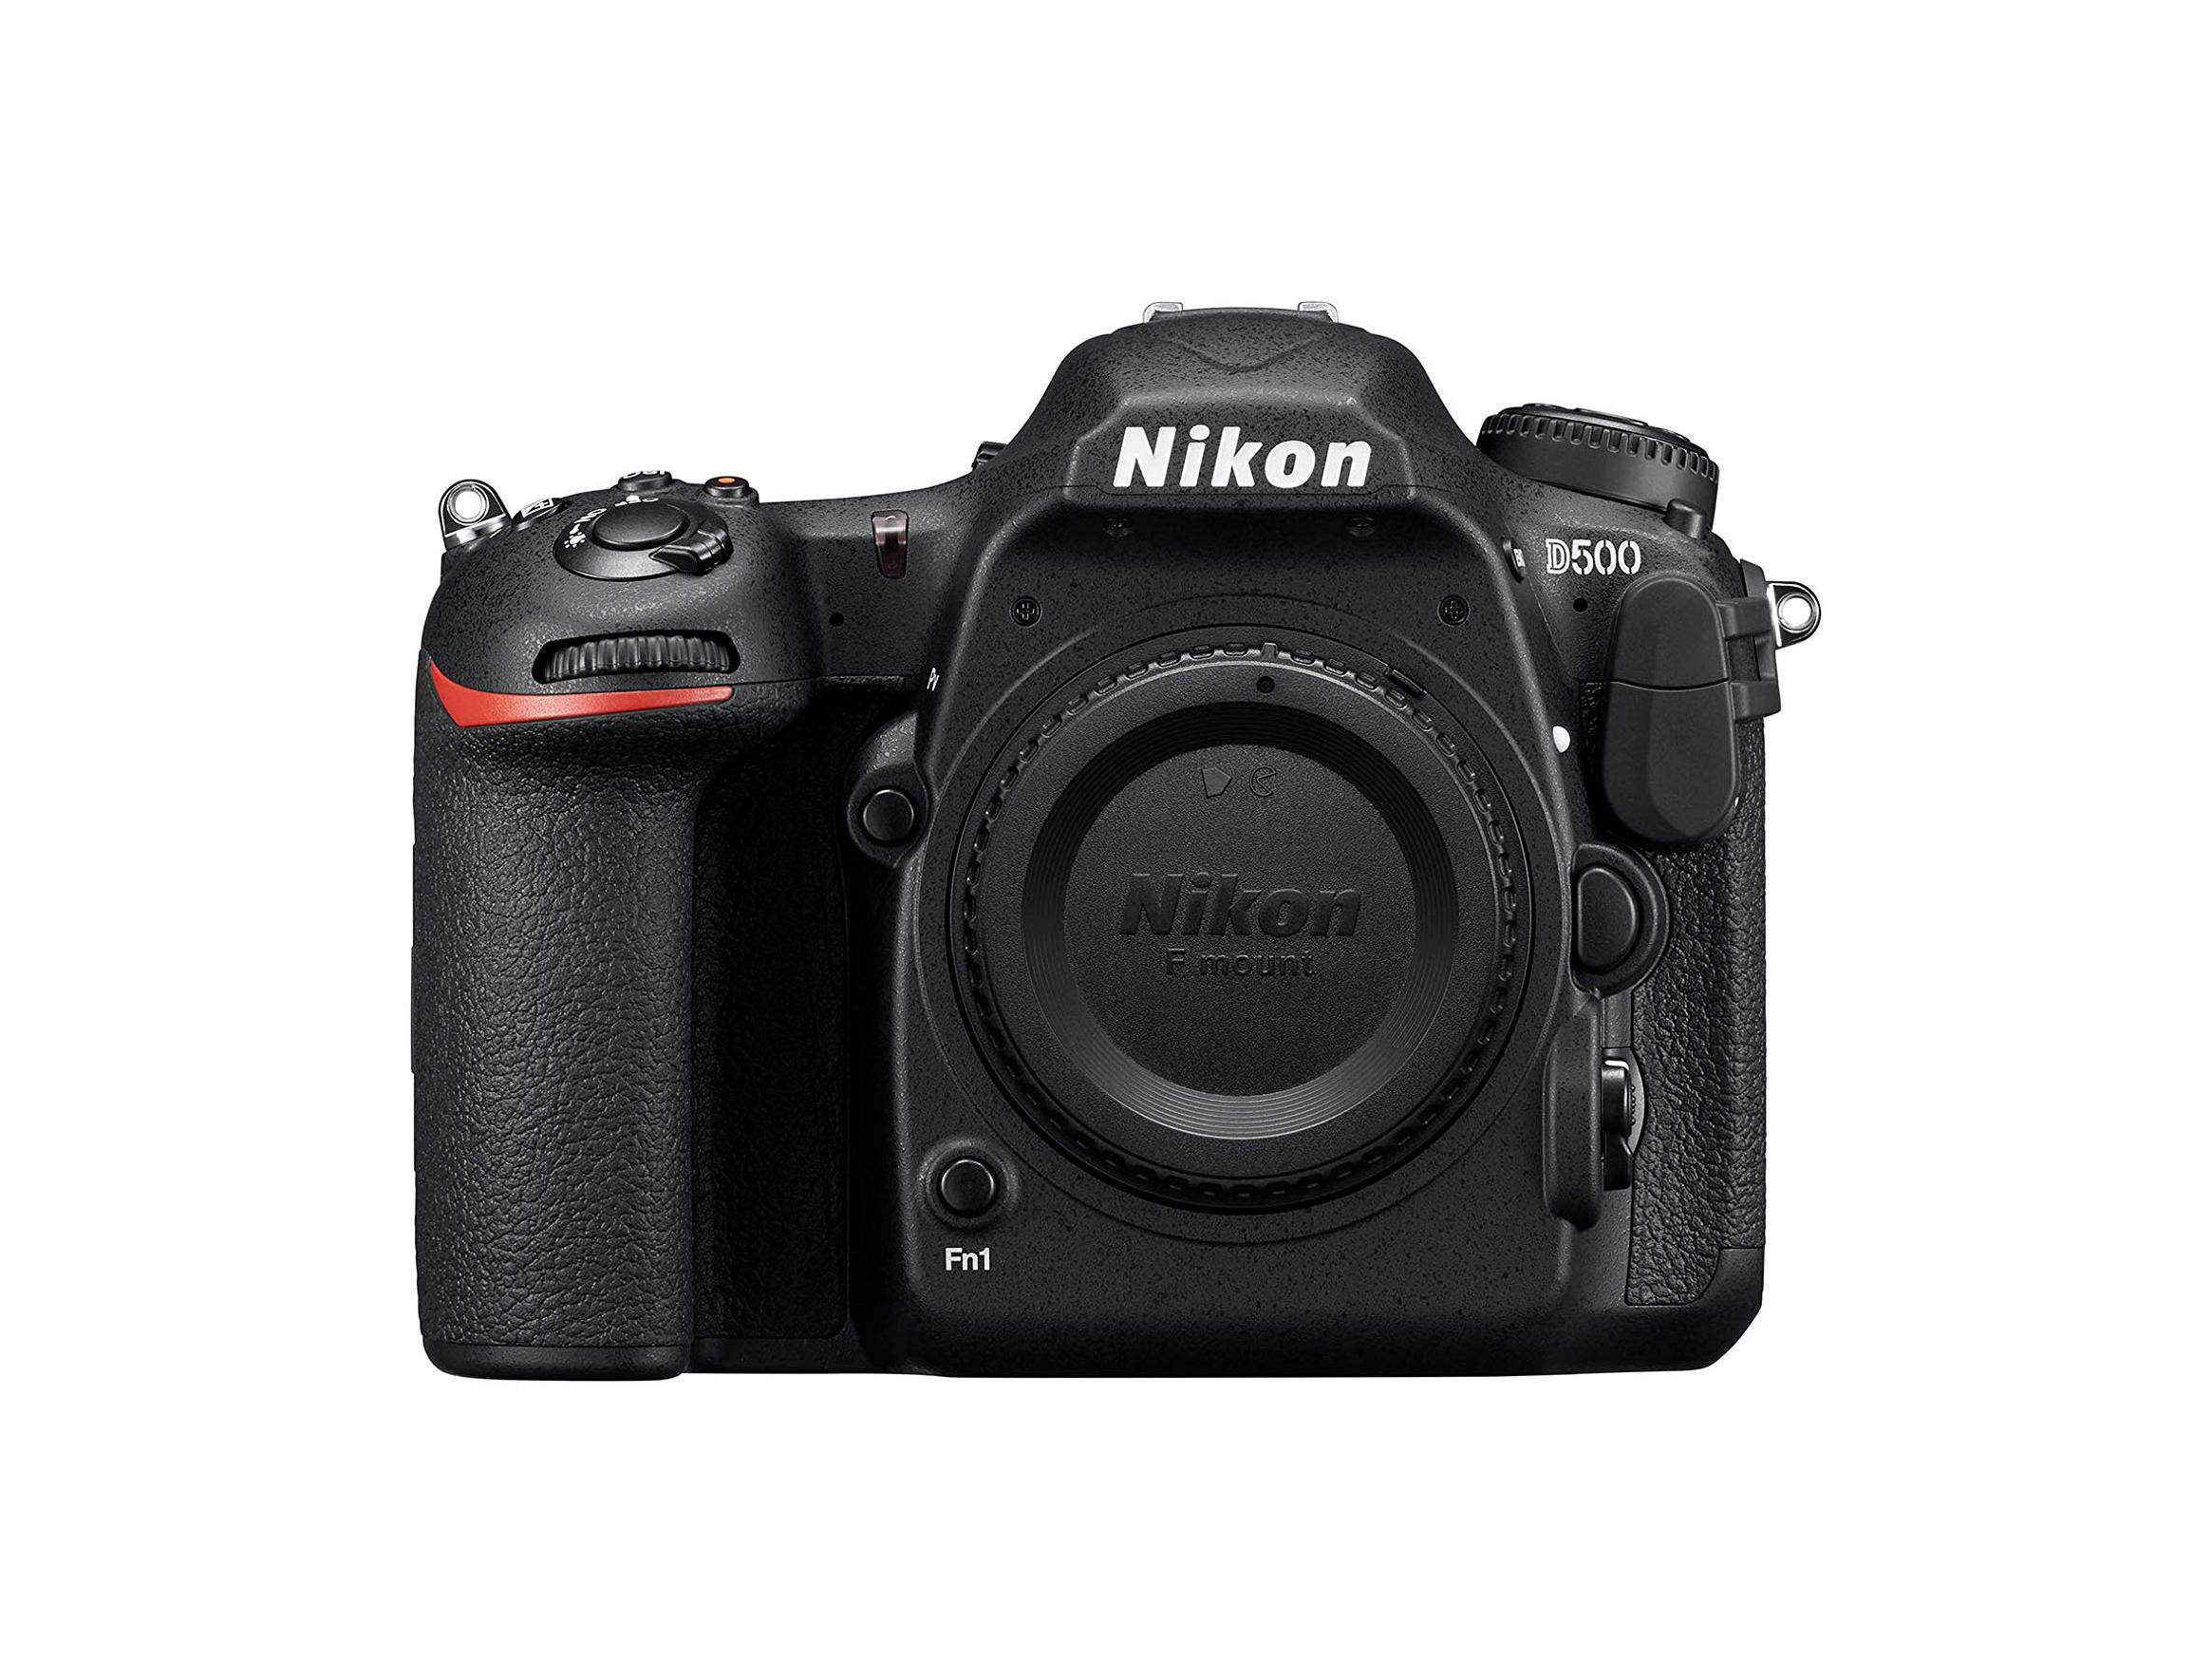 Best DSLR camera for all budgets and skill levels, from